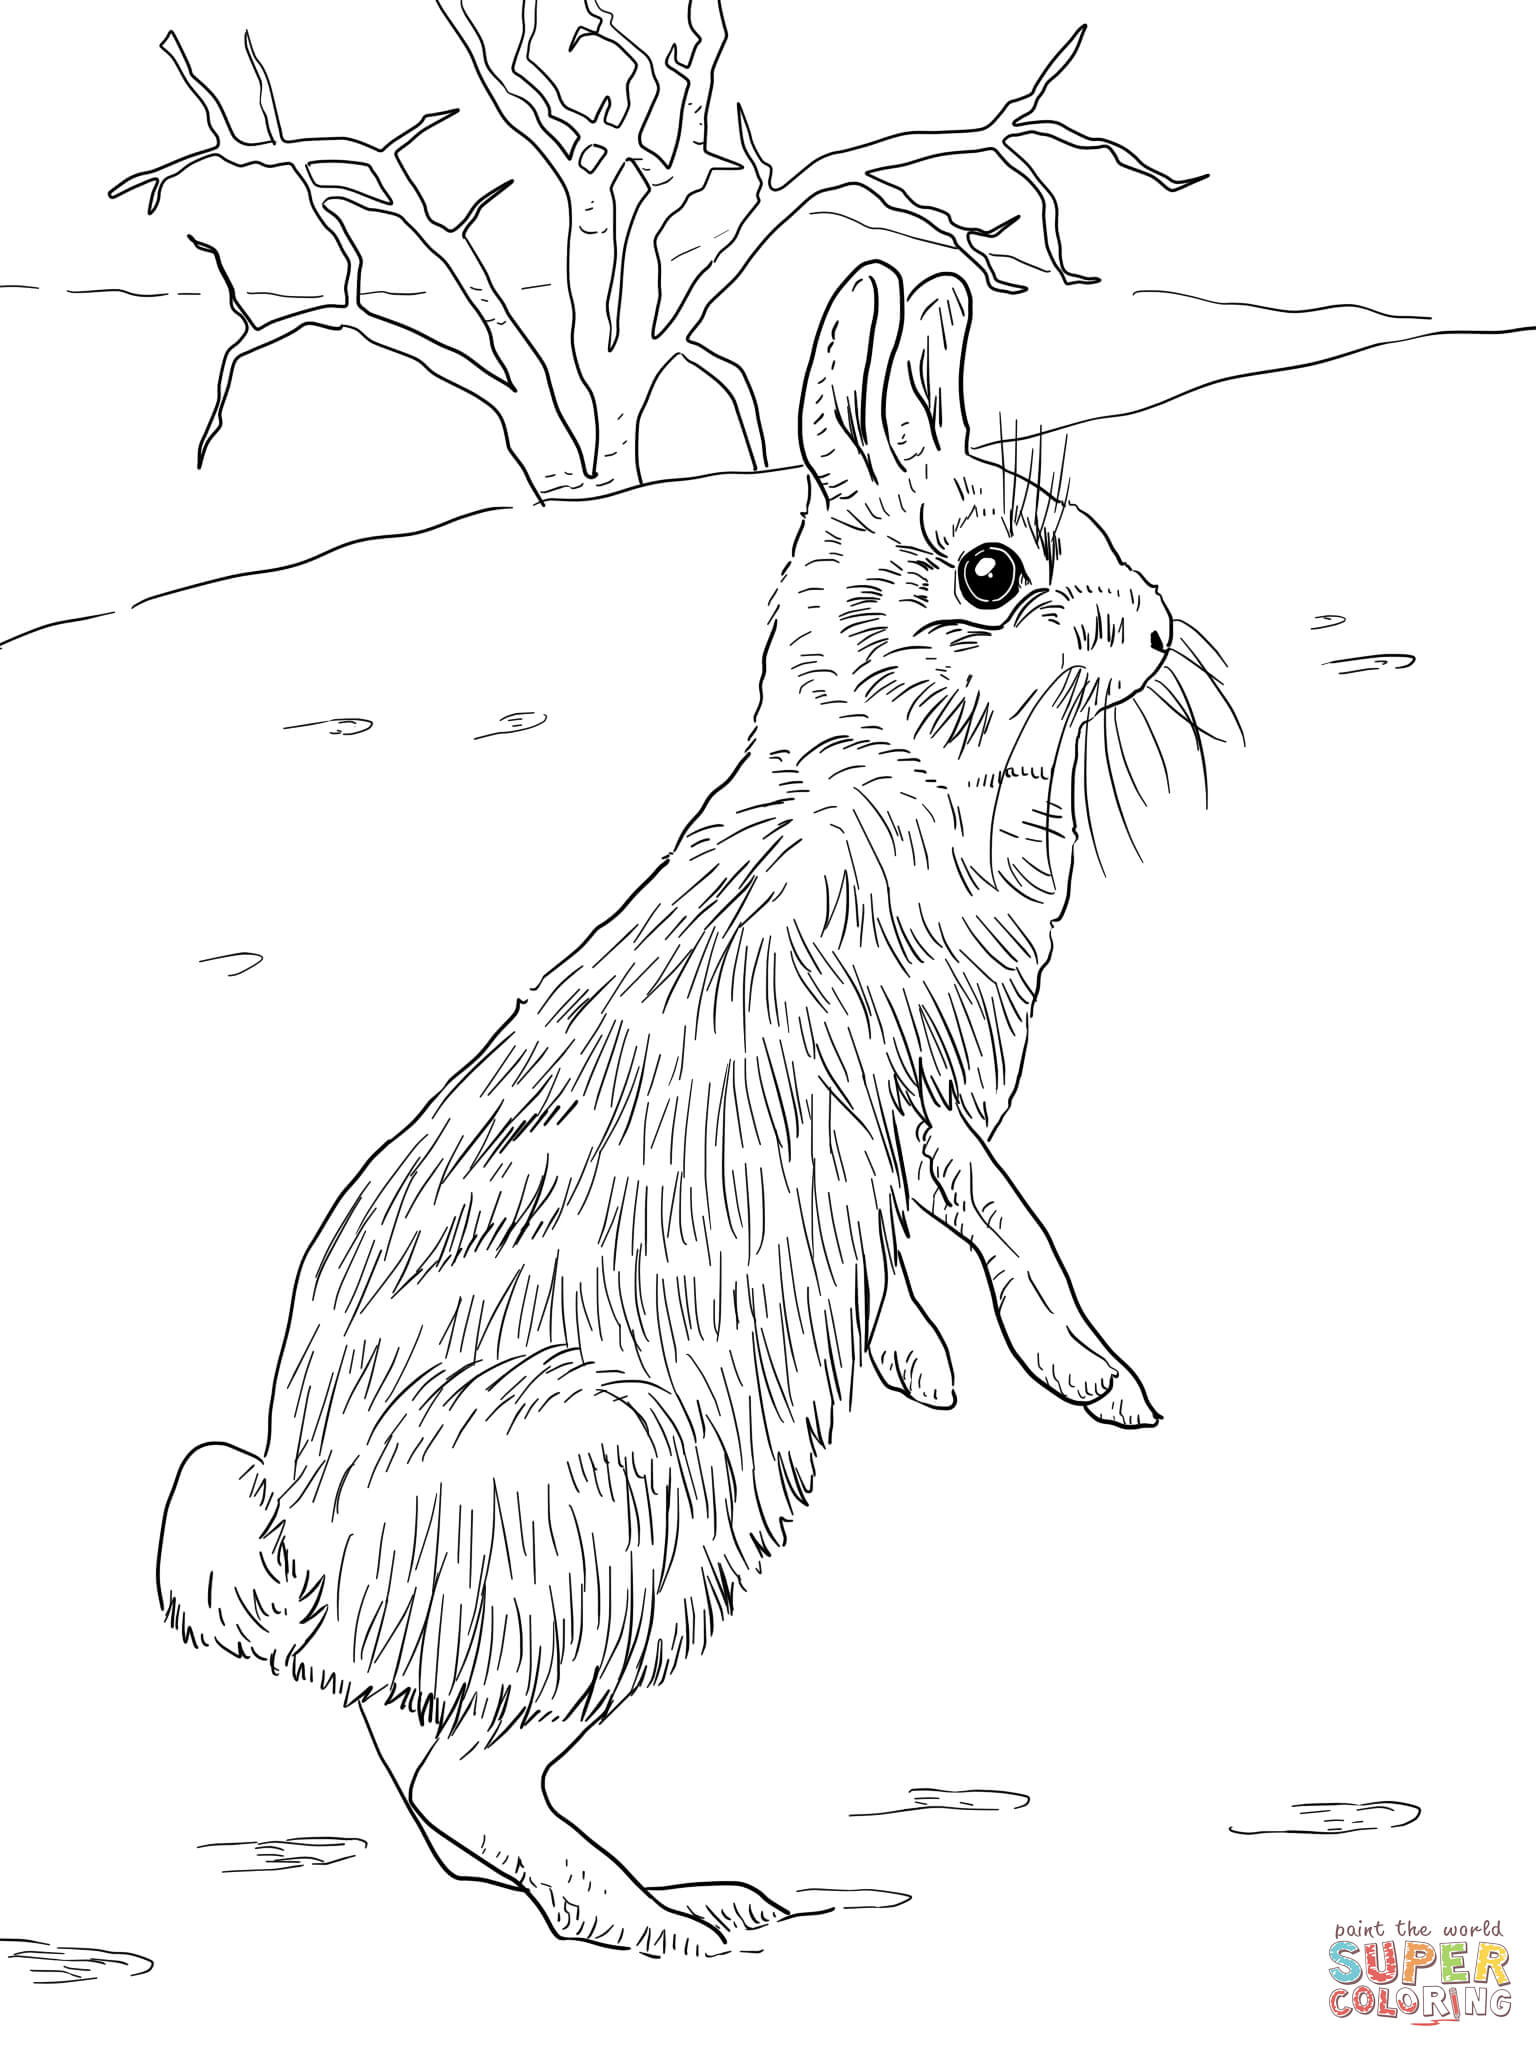 Eastern Cottontail Rabbit Coloring Page Free Printable Coloring